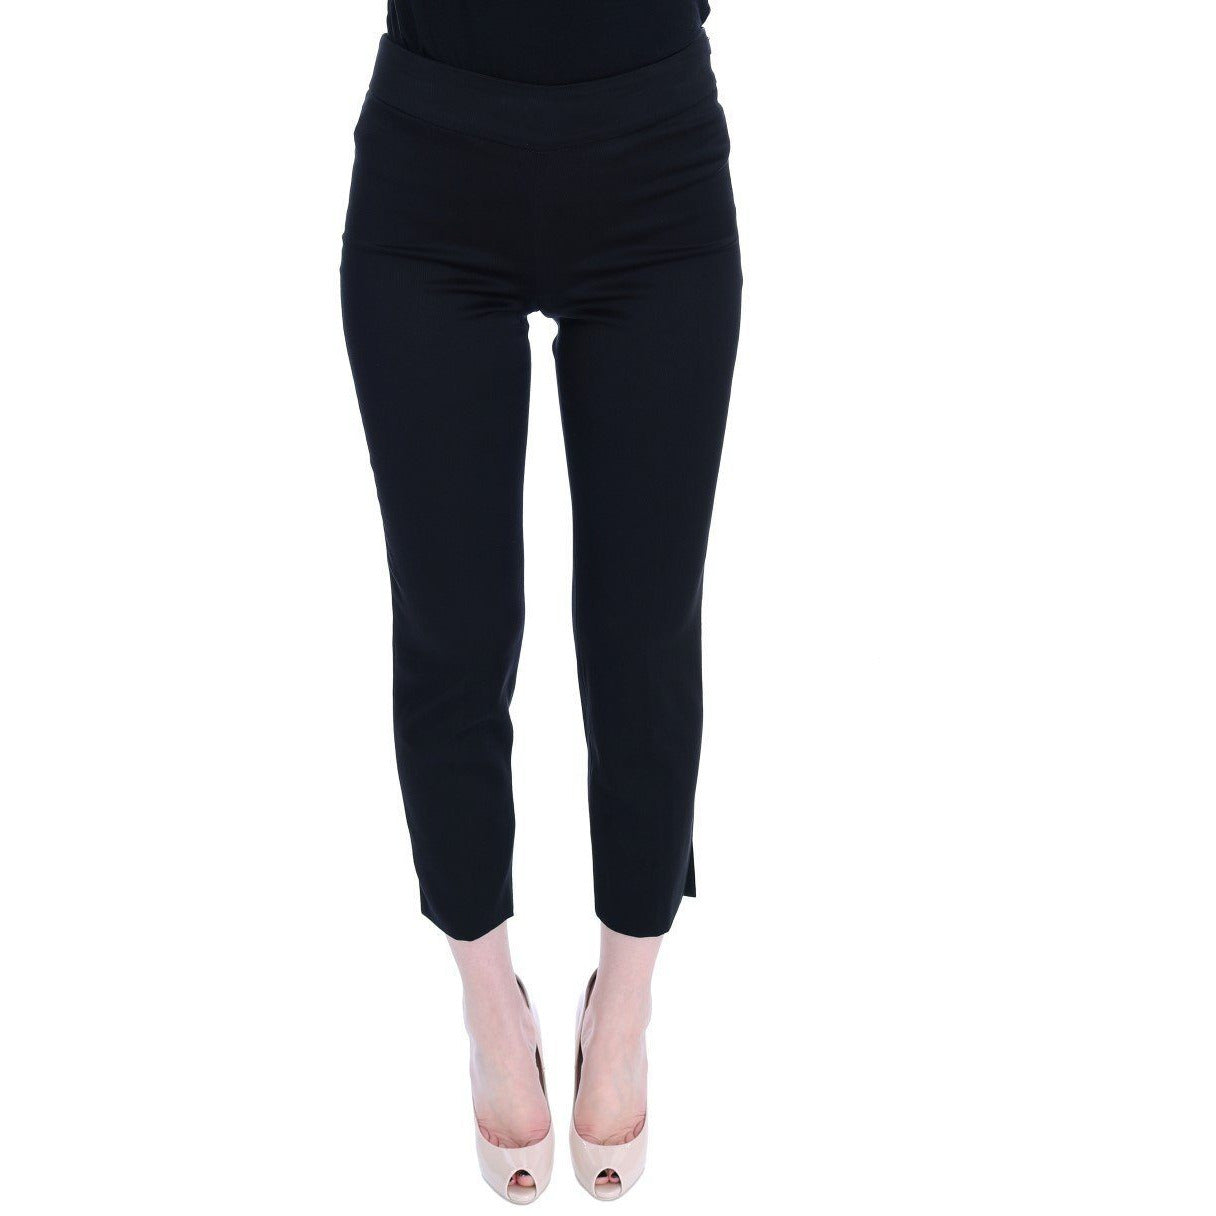 Black Cotton Stretch Capri Dress Pants BENCIVENGA